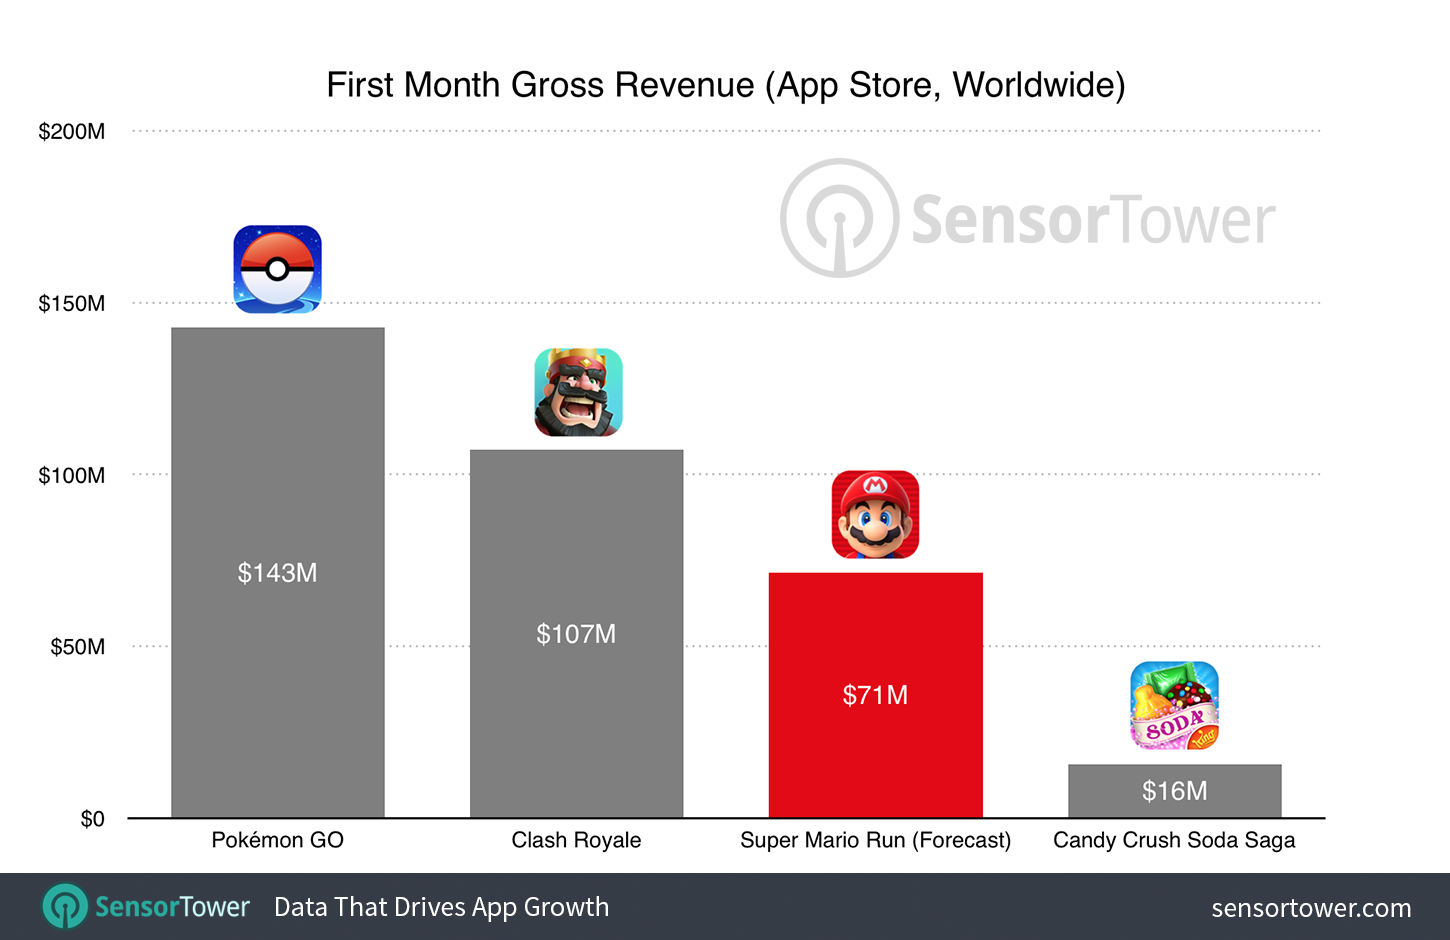 super-mario-run-revenue-forecast-sensor-tower